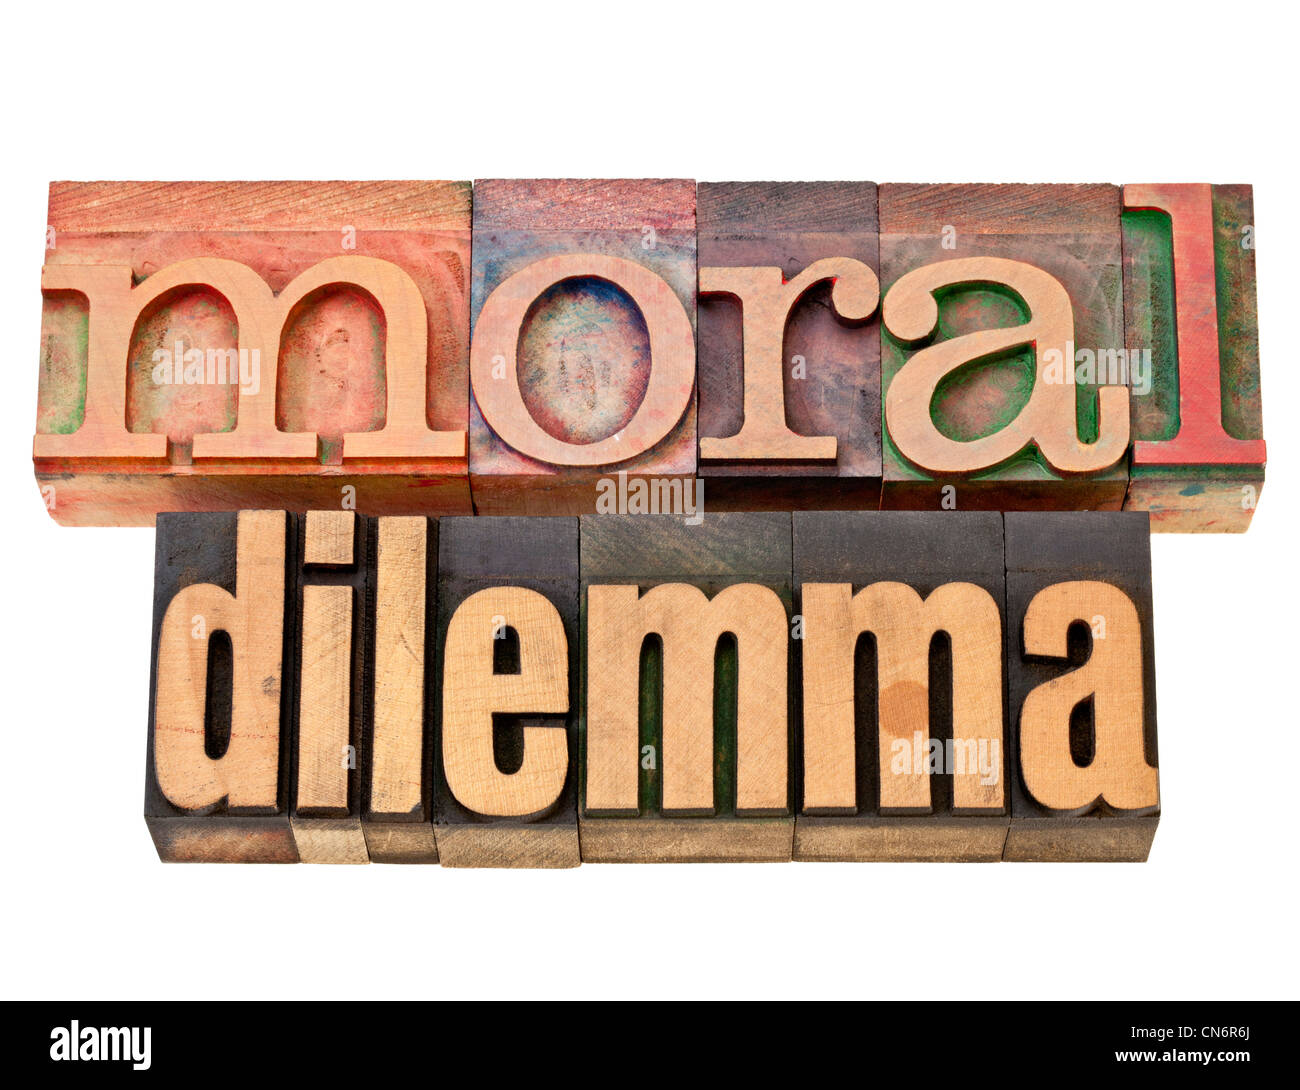 moral dilemma - ethics concept - isolated text in vintage letterpress wood type - Stock Image